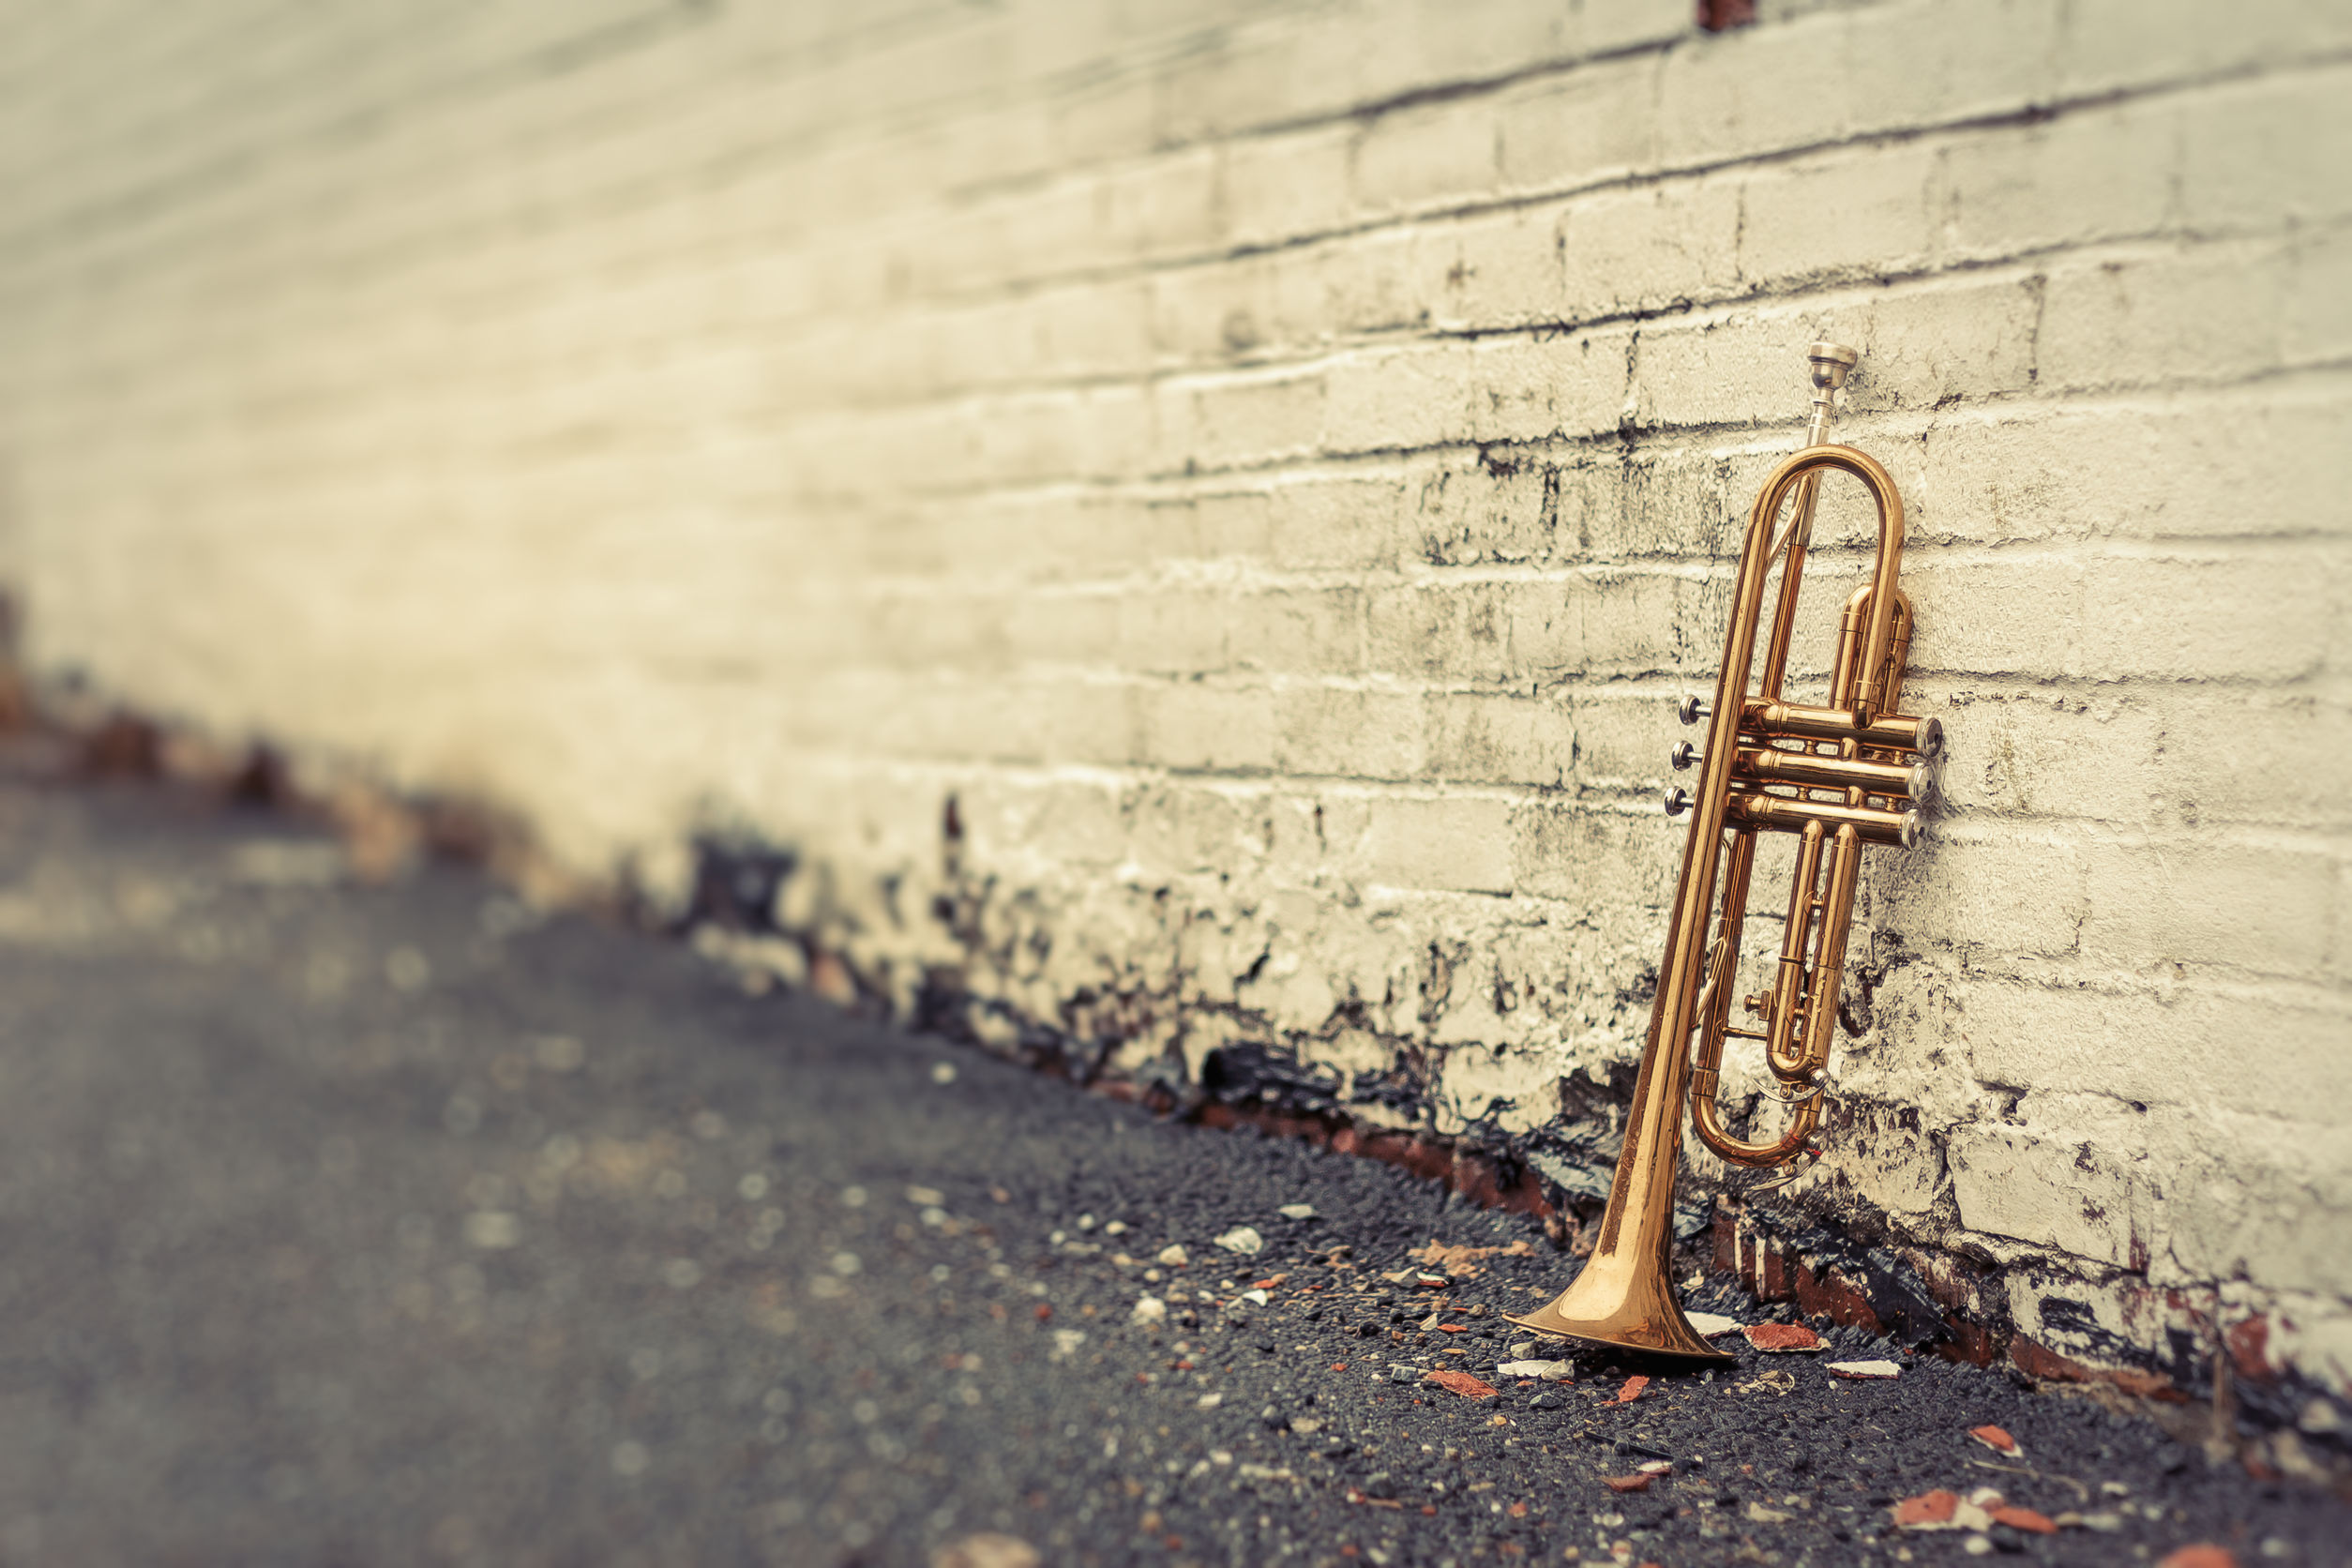 worn trumpet against brick wall